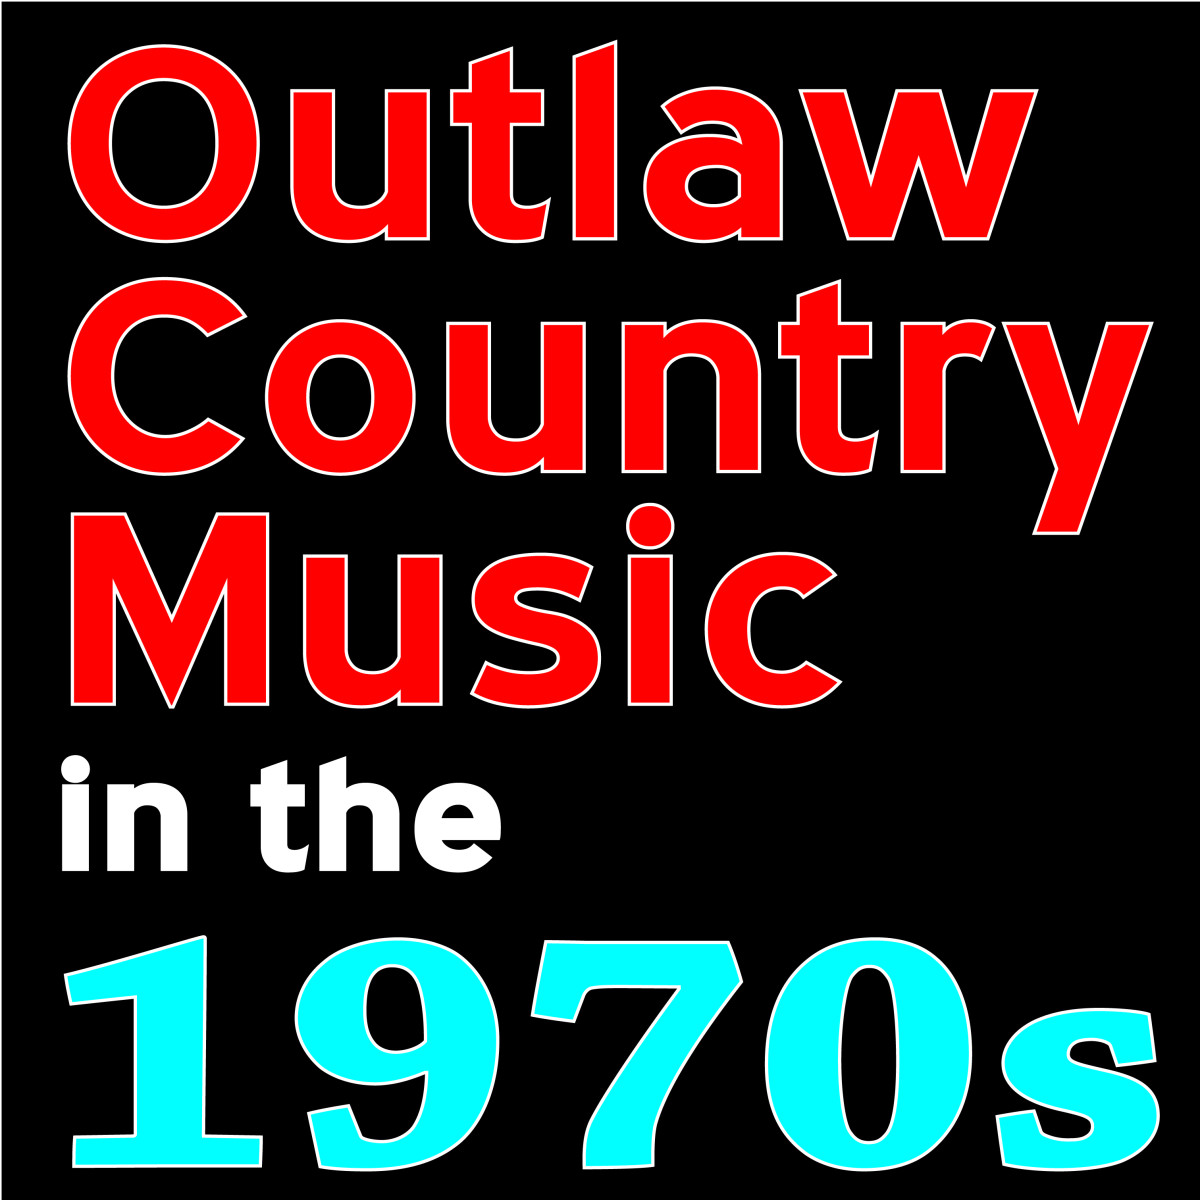 Outlaw Country Music in the 1970s